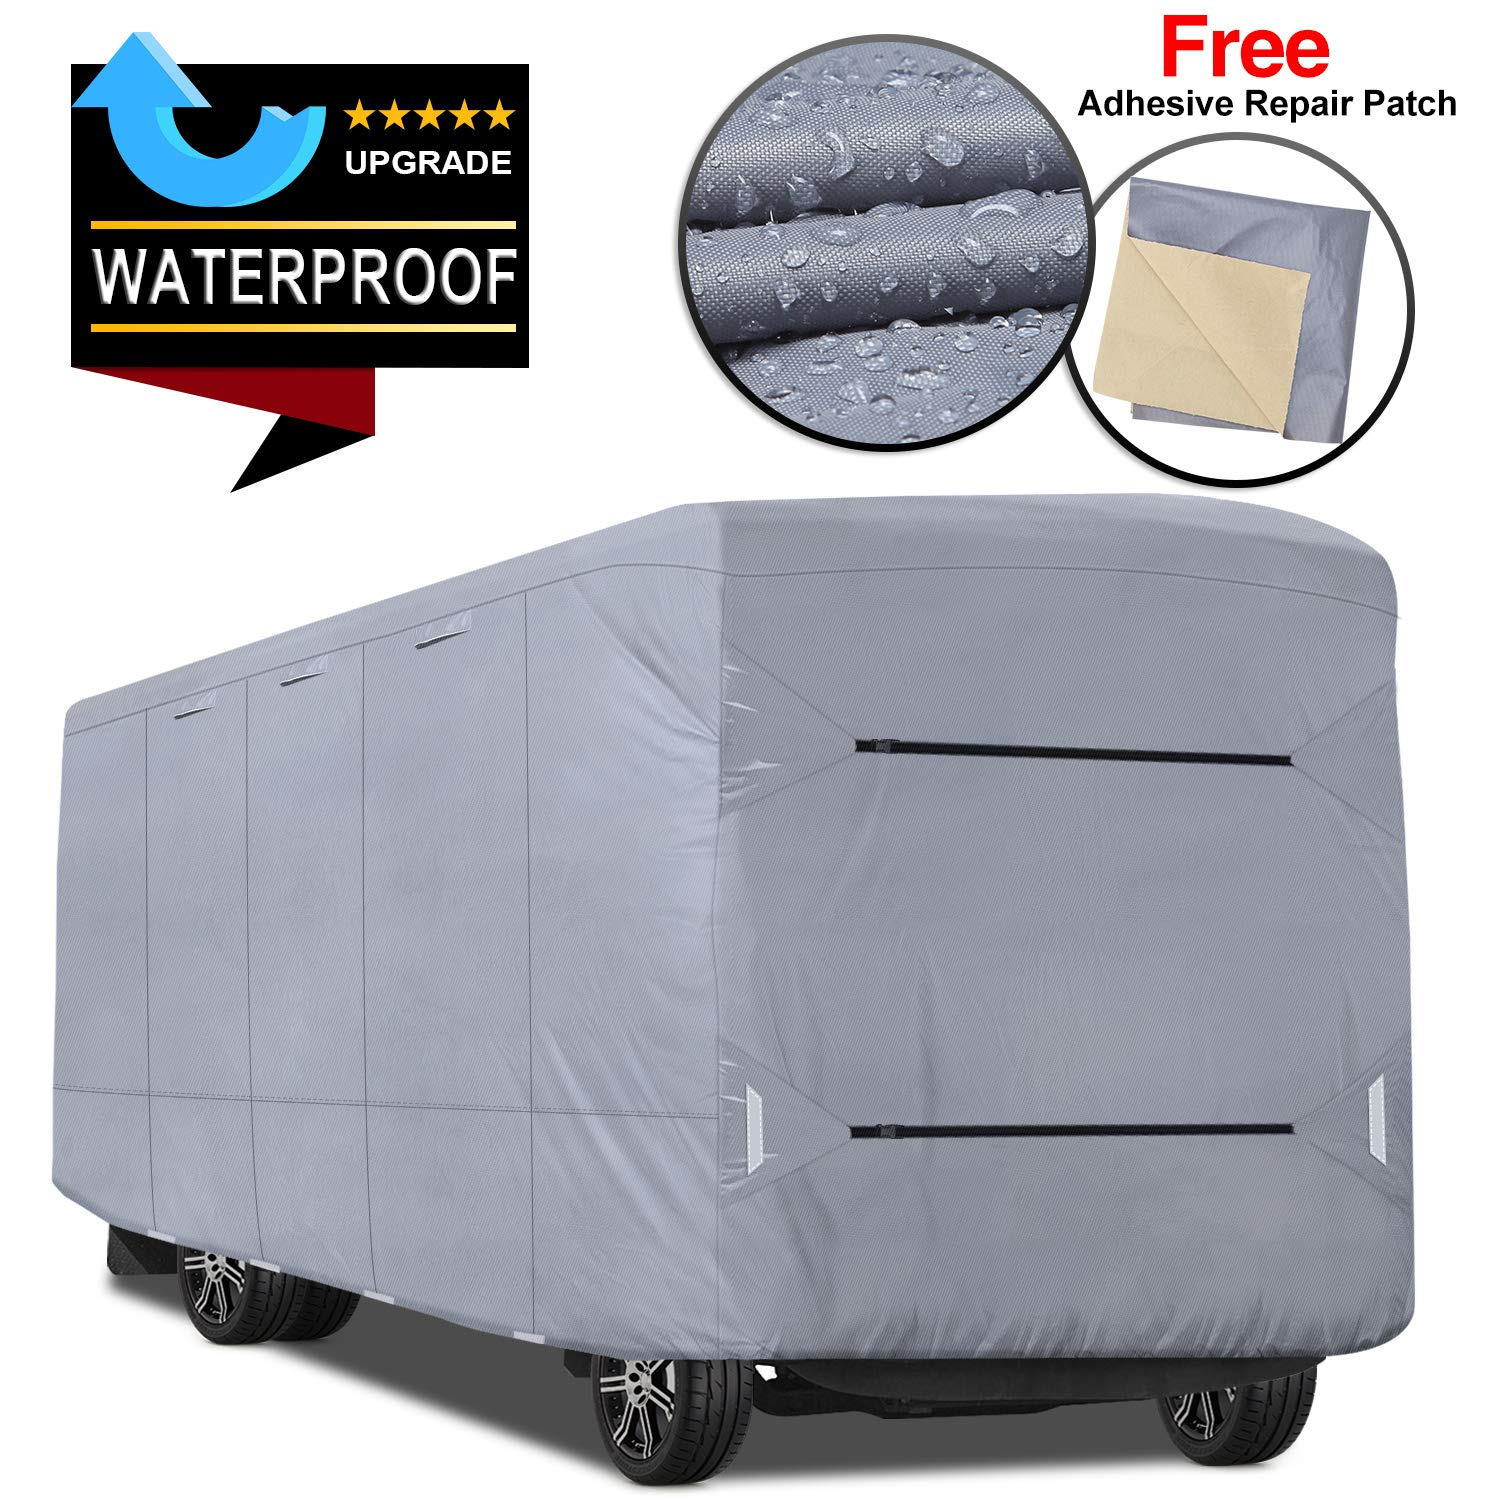 RVMasking Upgraded Waterproof Class A RV Cover, Fits 31'1'' - 34' RVs - Easy Installaiton Anti-UV Ripstop Camper Cover with Adhesive Repair Patch by RVMasking